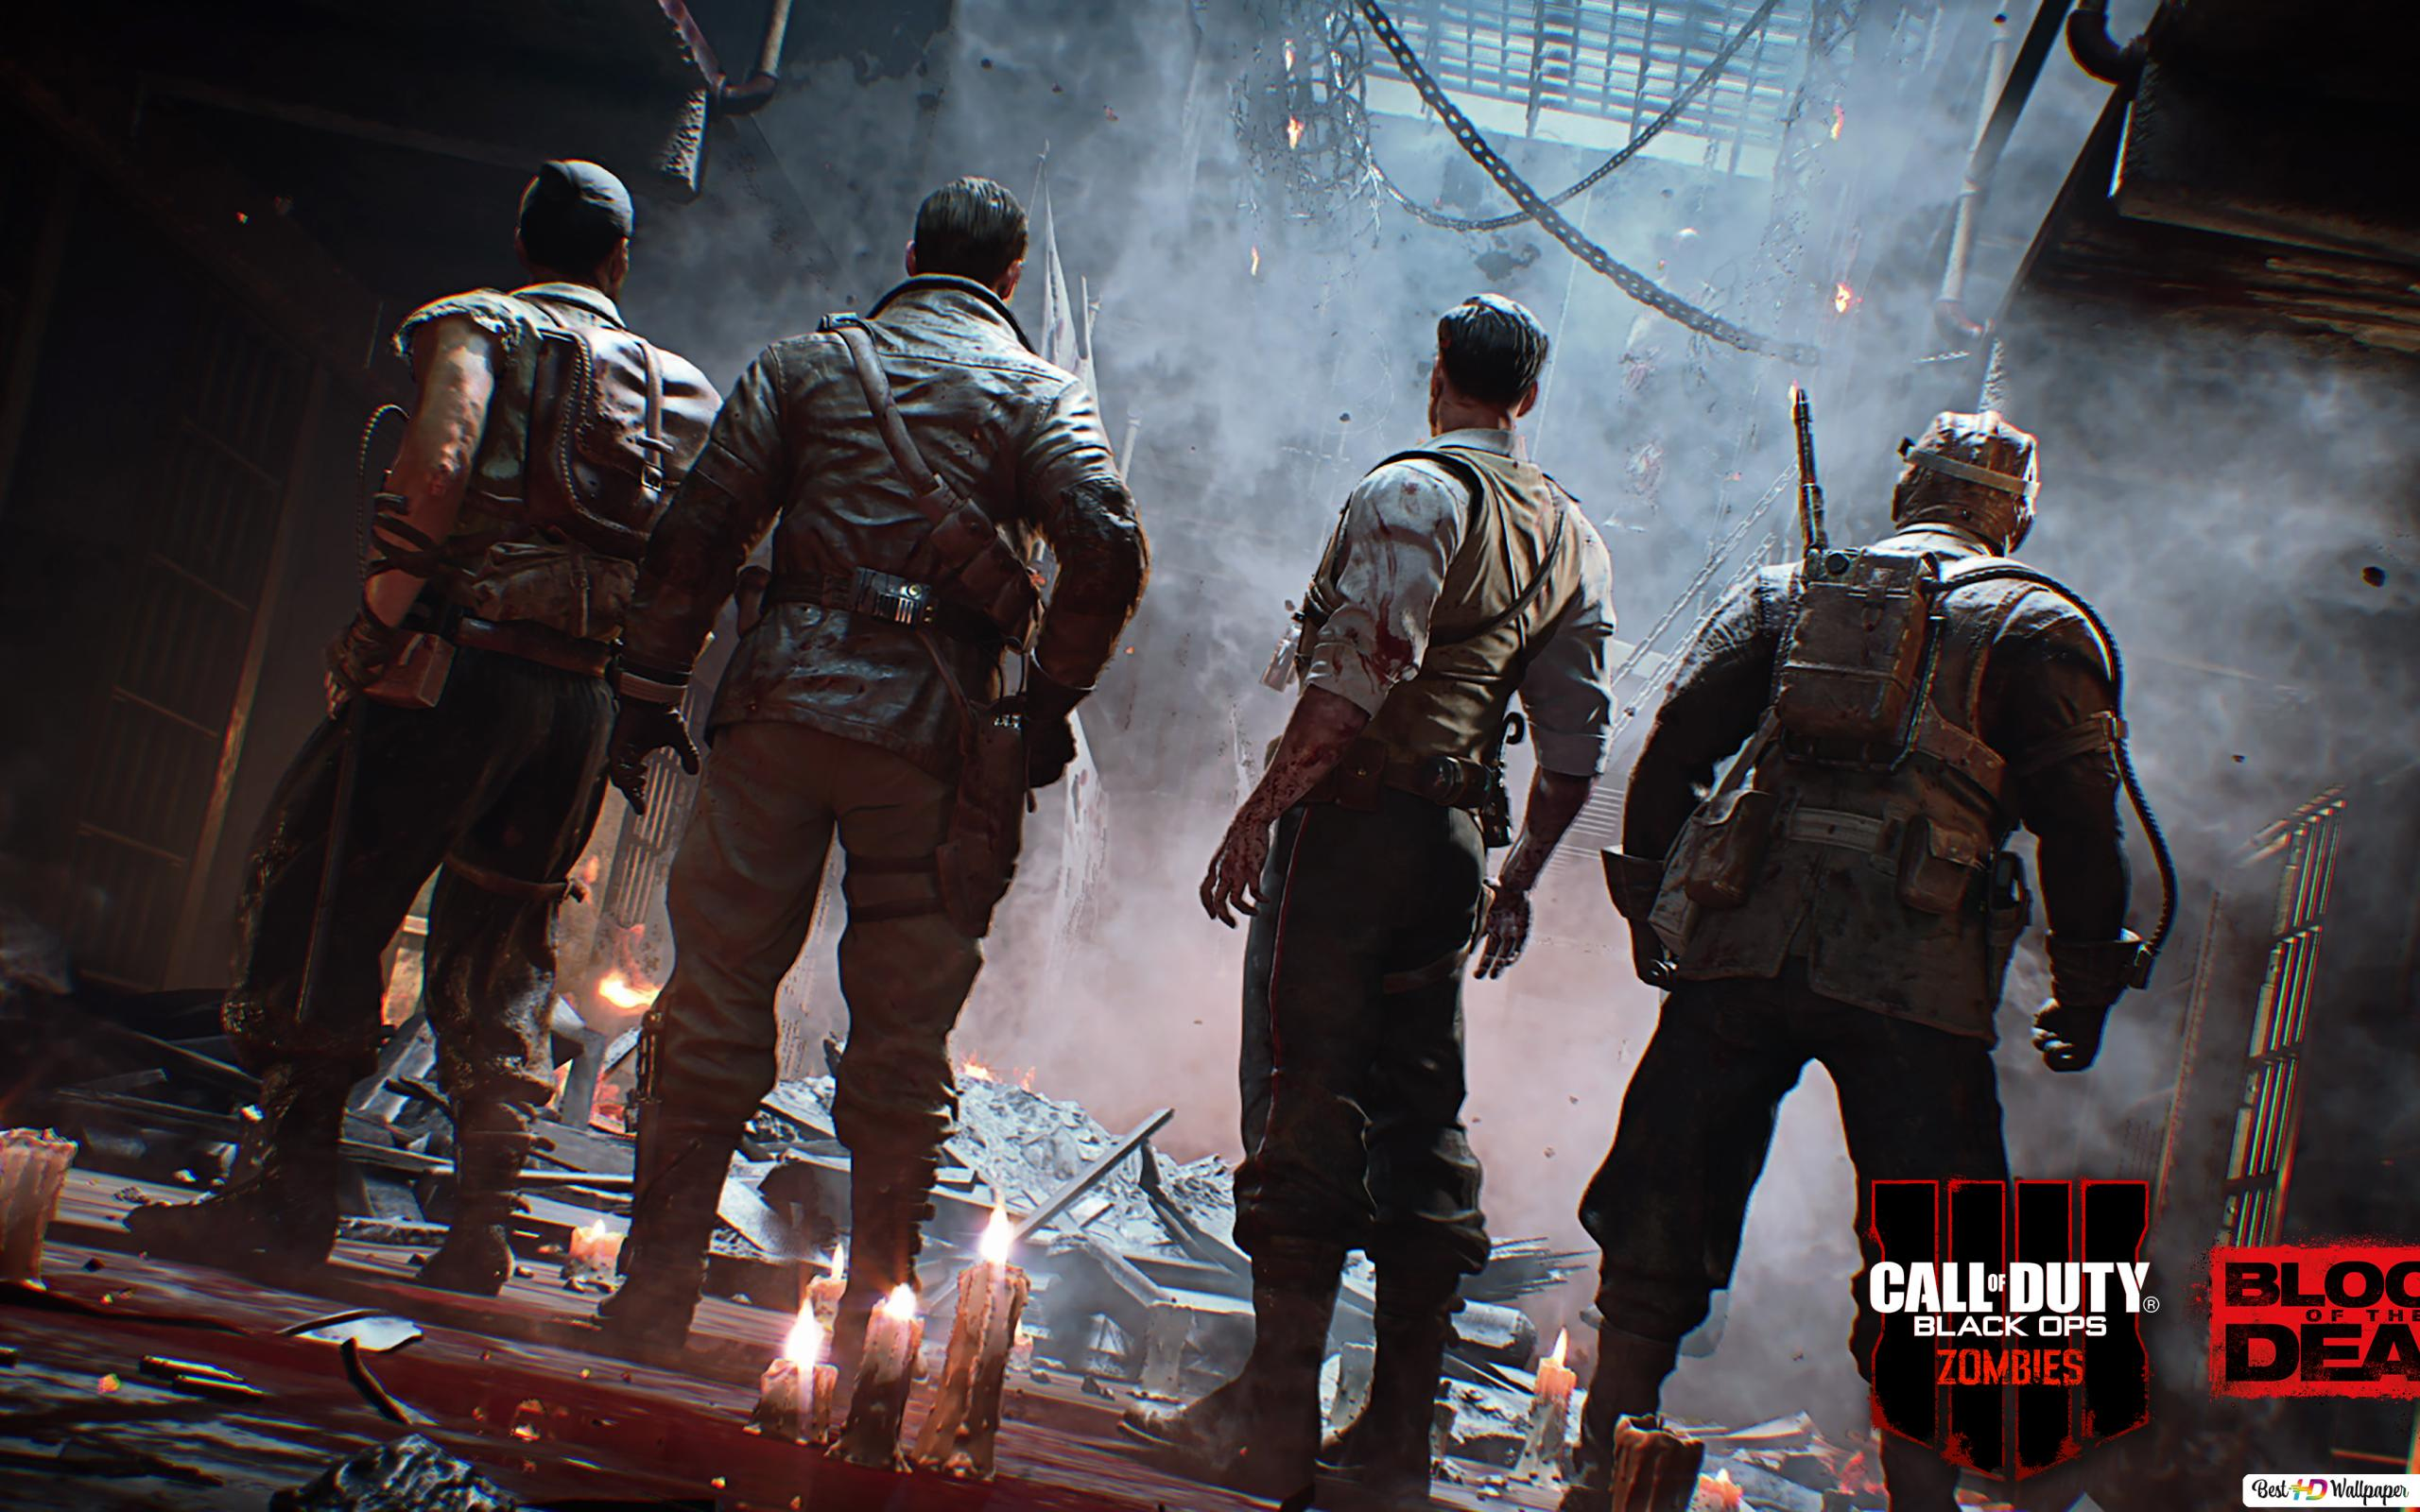 Call Of Duty Black Ops 4 Zombies Blood Of The Dead Hd壁紙のダウンロード